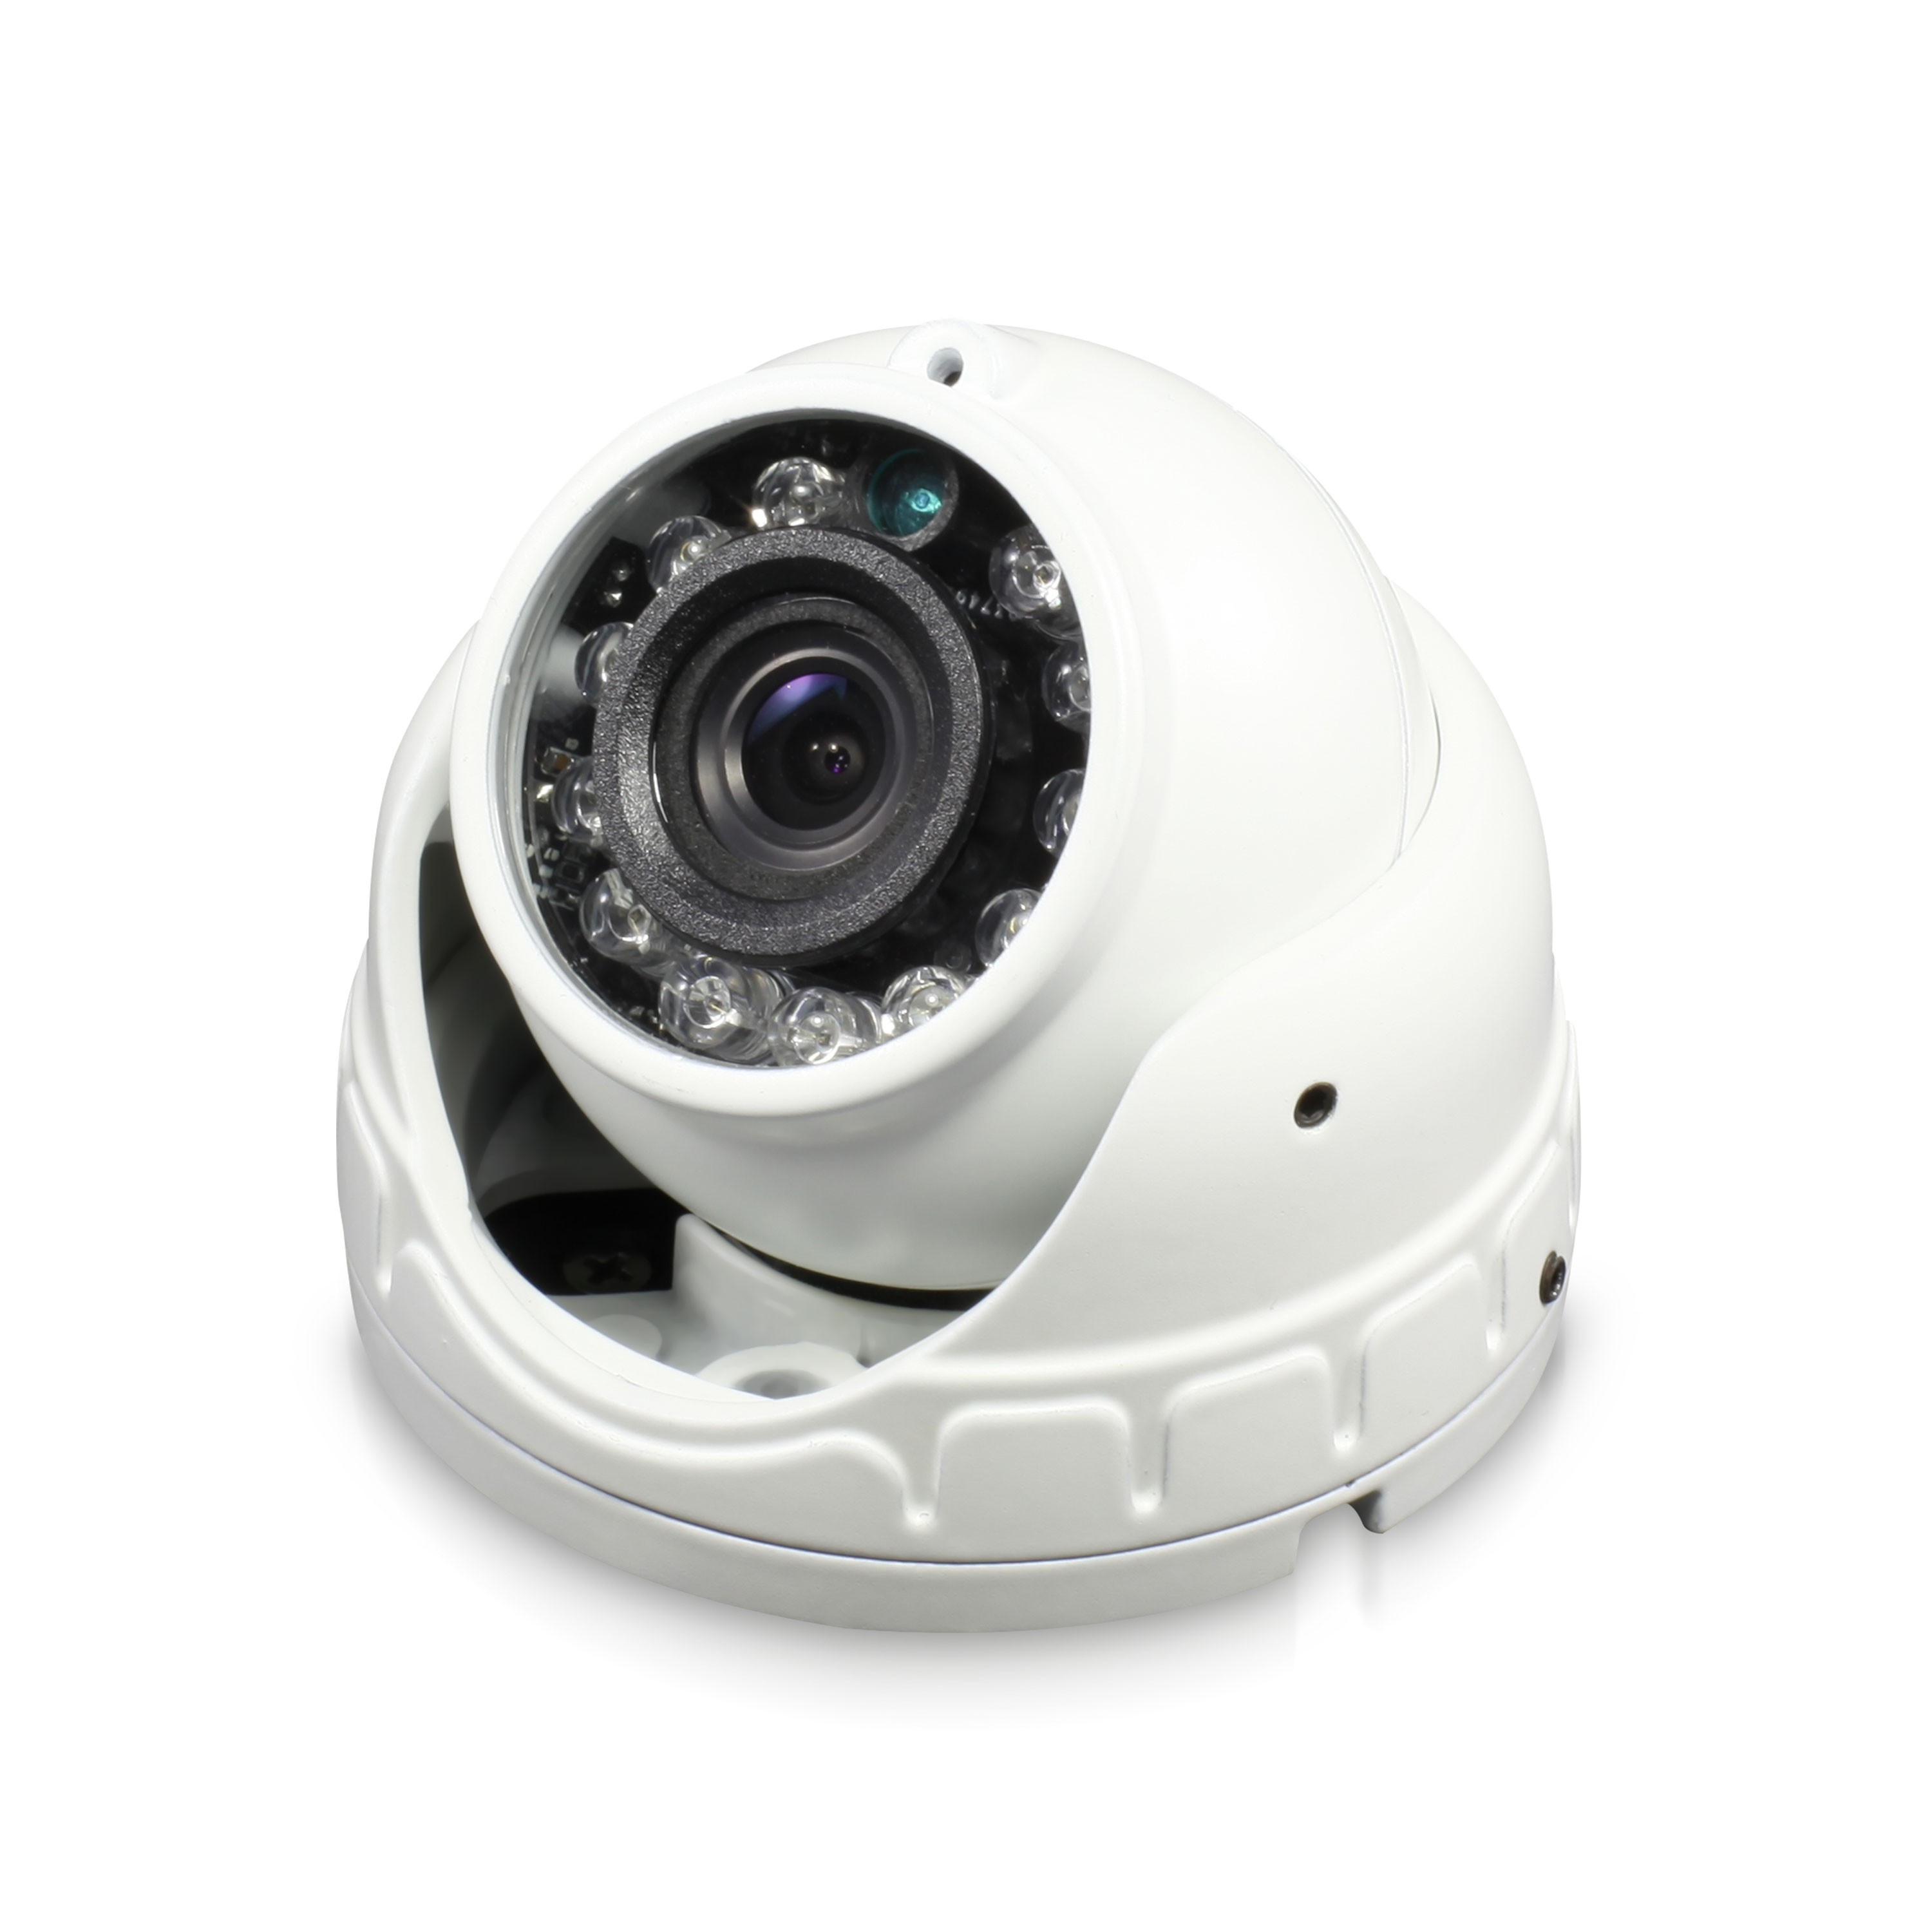 Swann Security Cameras   Buy Online Today at Swann.com/us/ USA